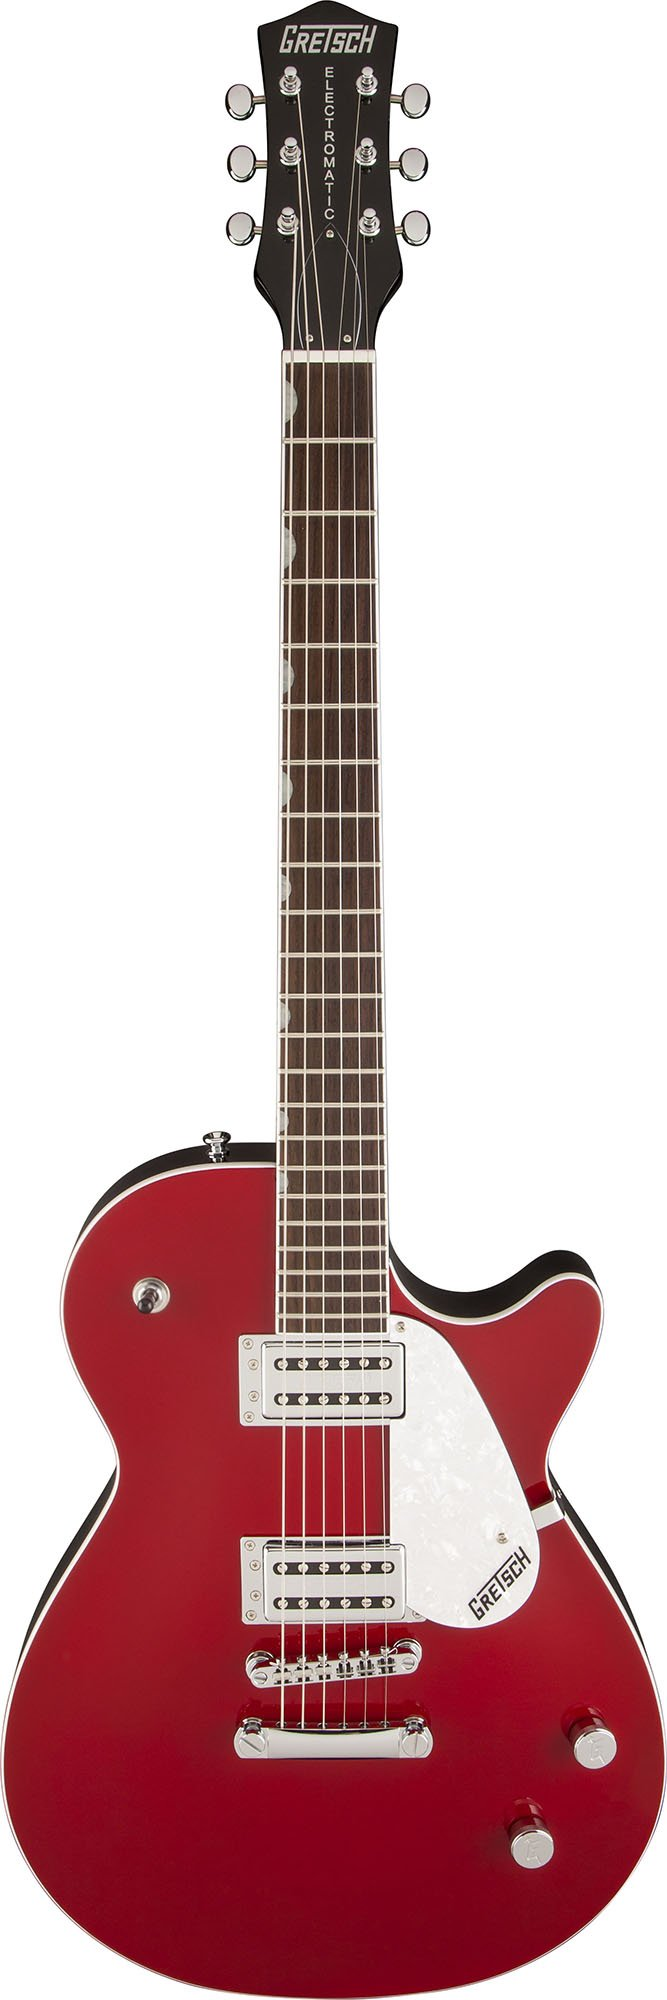 Cheap Gretsch Guitars GRETSCH 2519010516 G5425 ELECTROMATIC RED Red Black Friday & Cyber Monday 2019